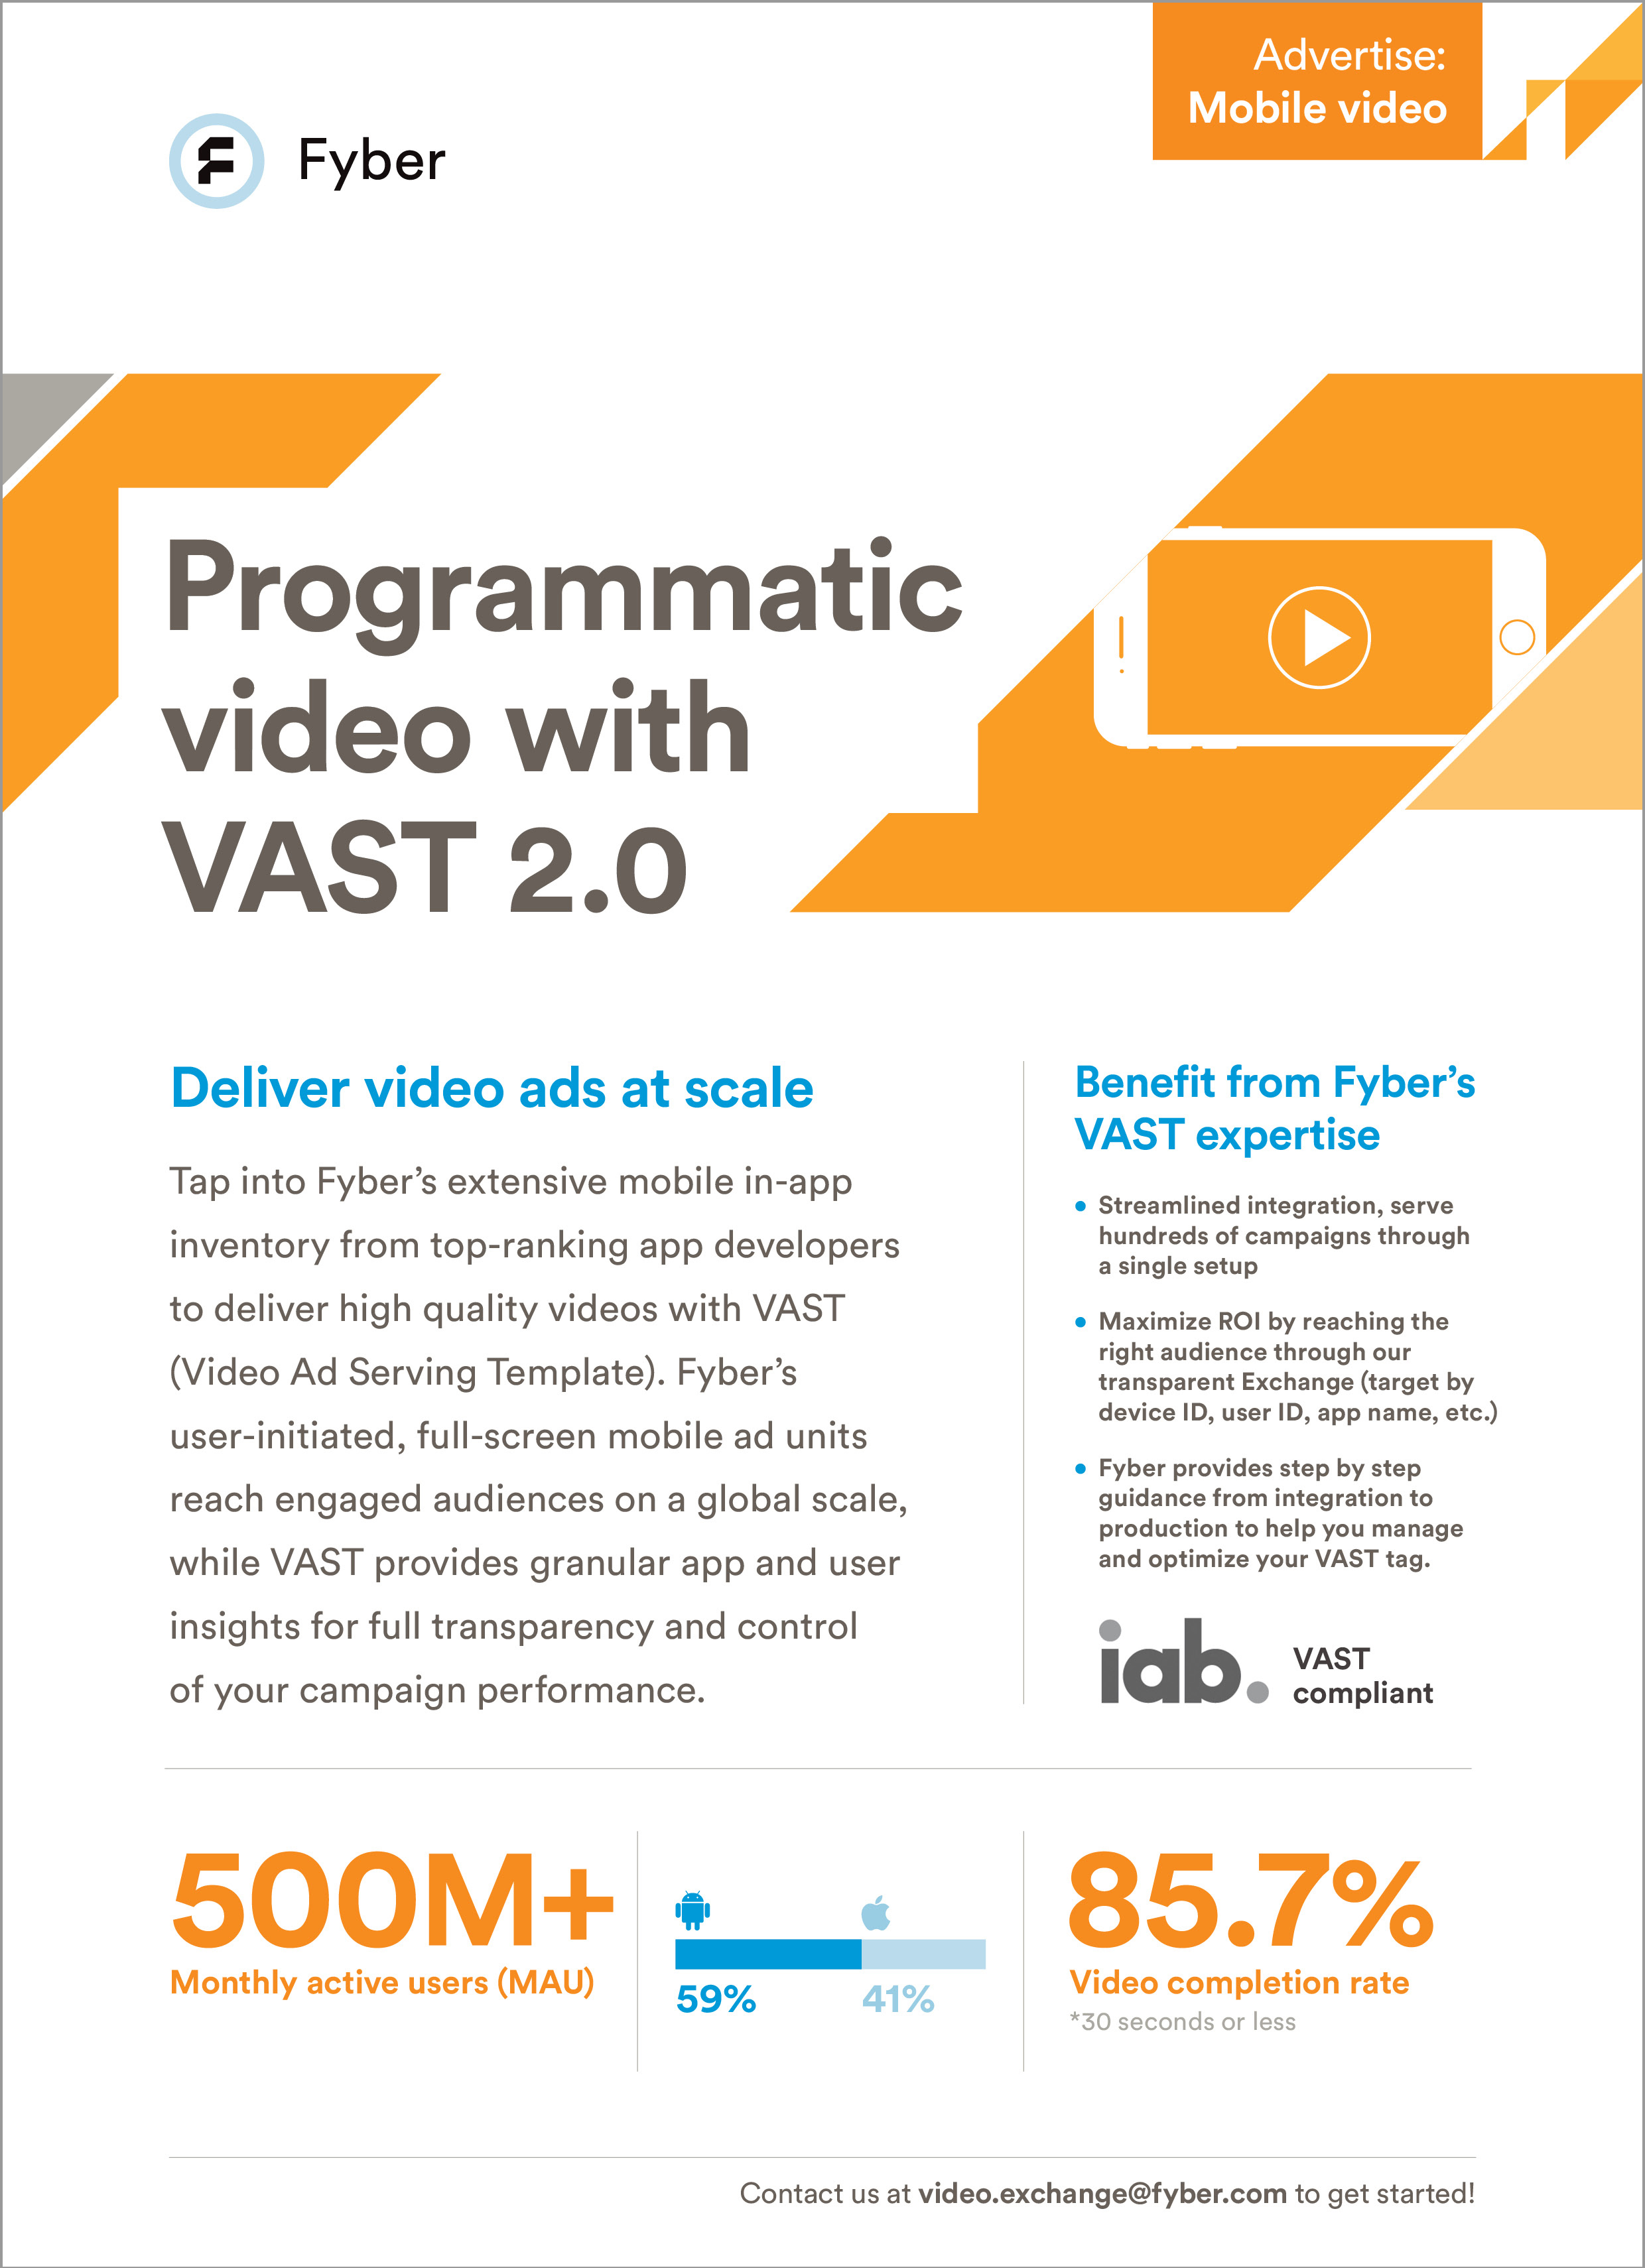 Programmatic Video with VAST